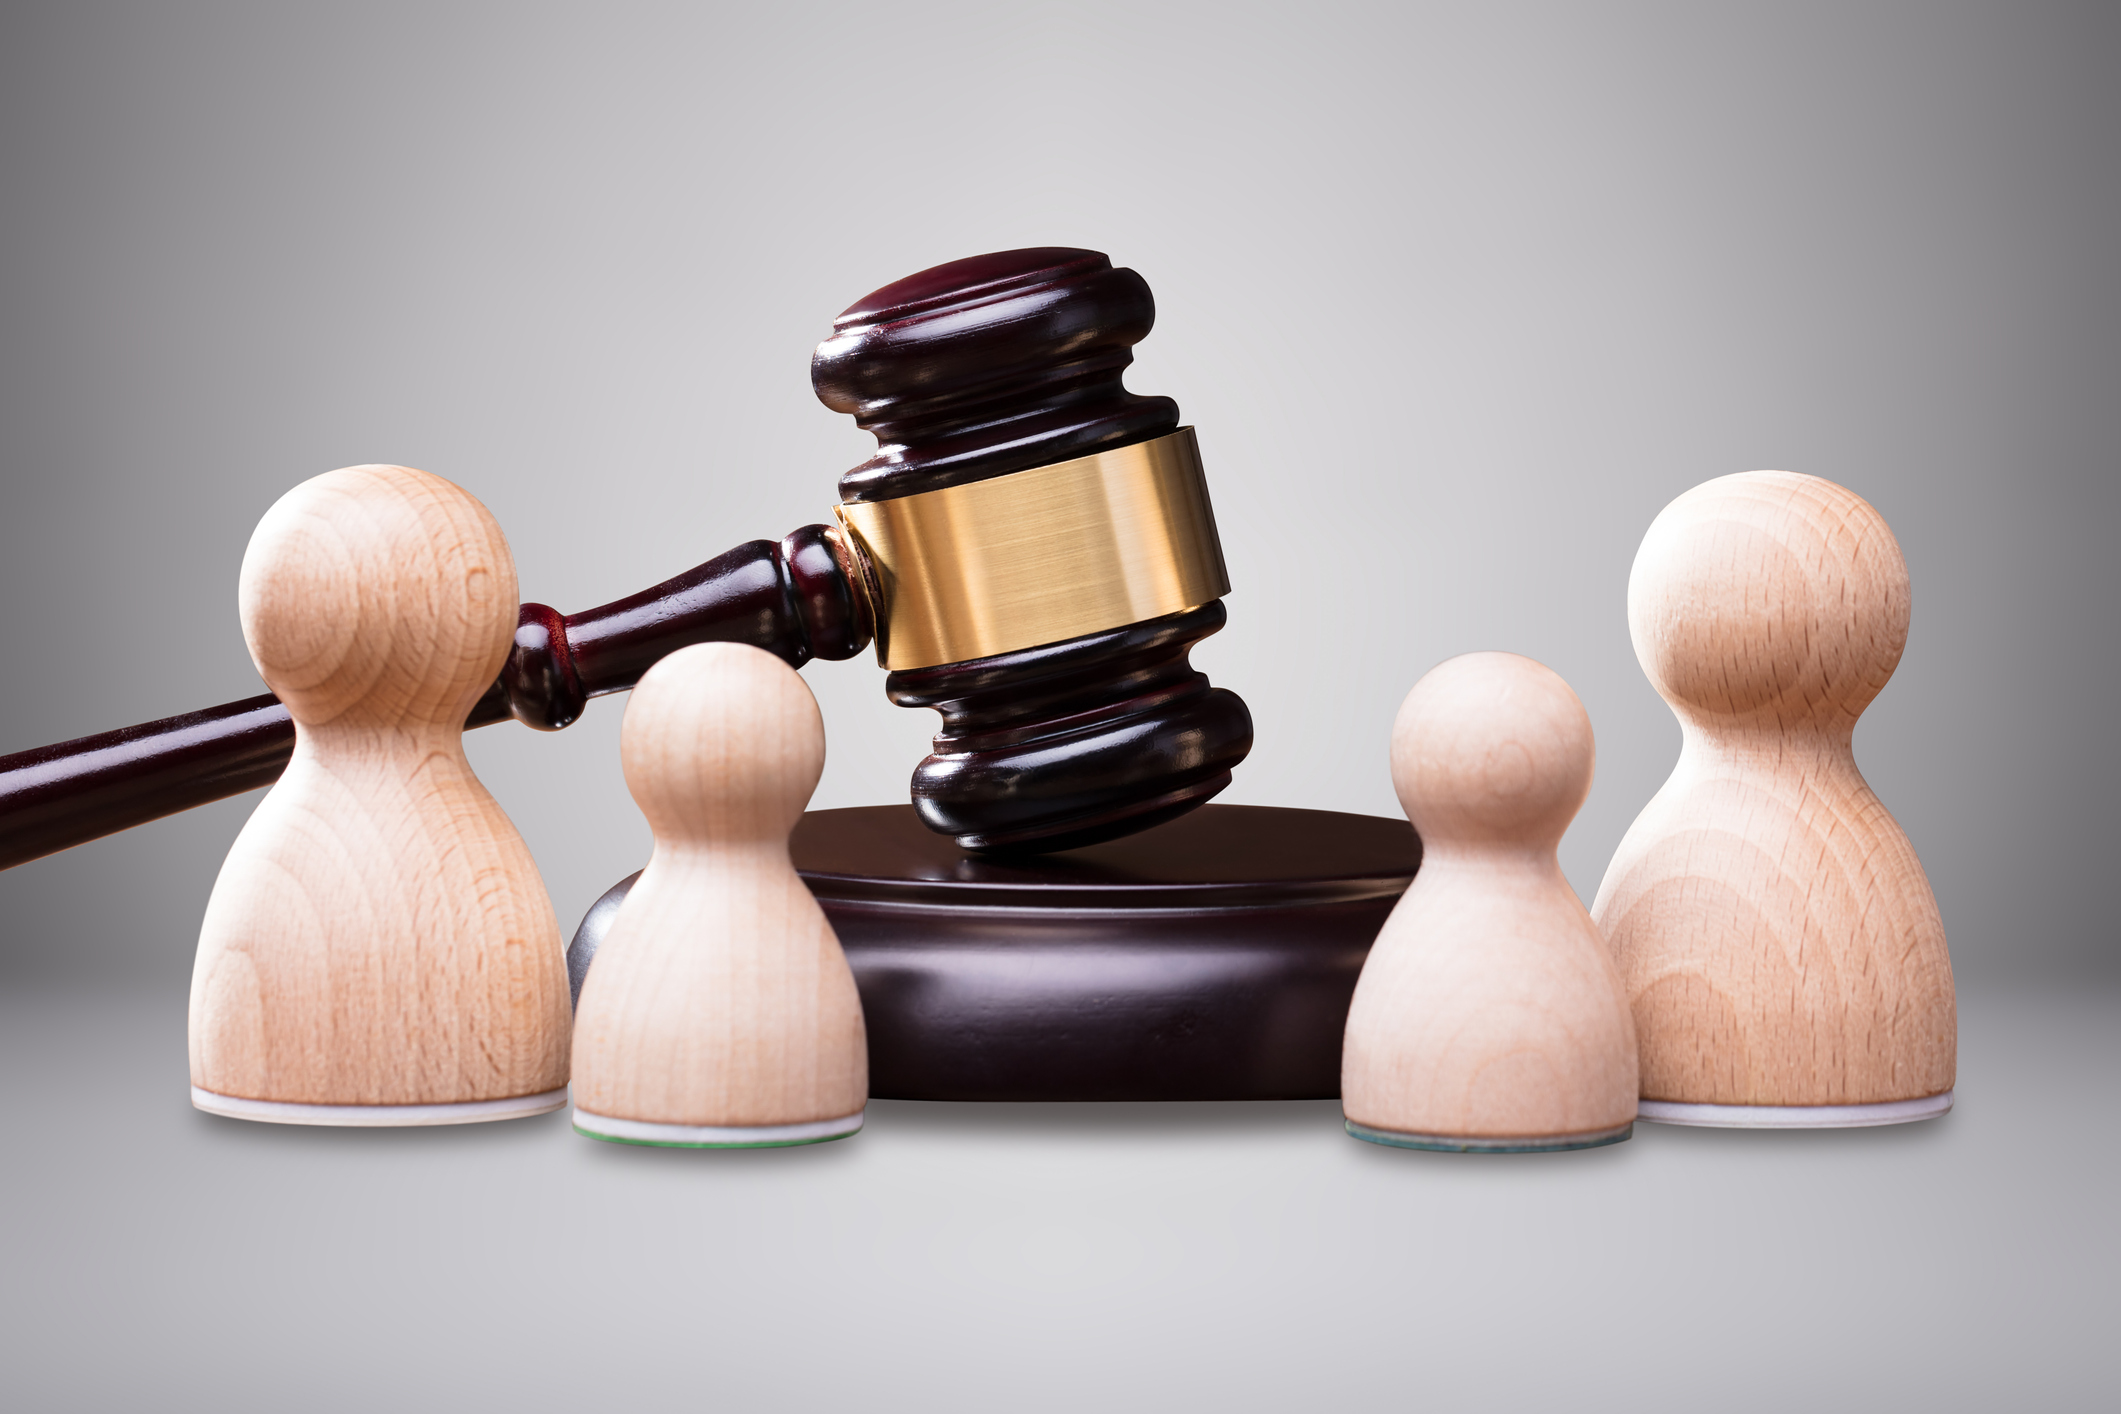 Wooden Pawns In Front Of Gavel And Mallet